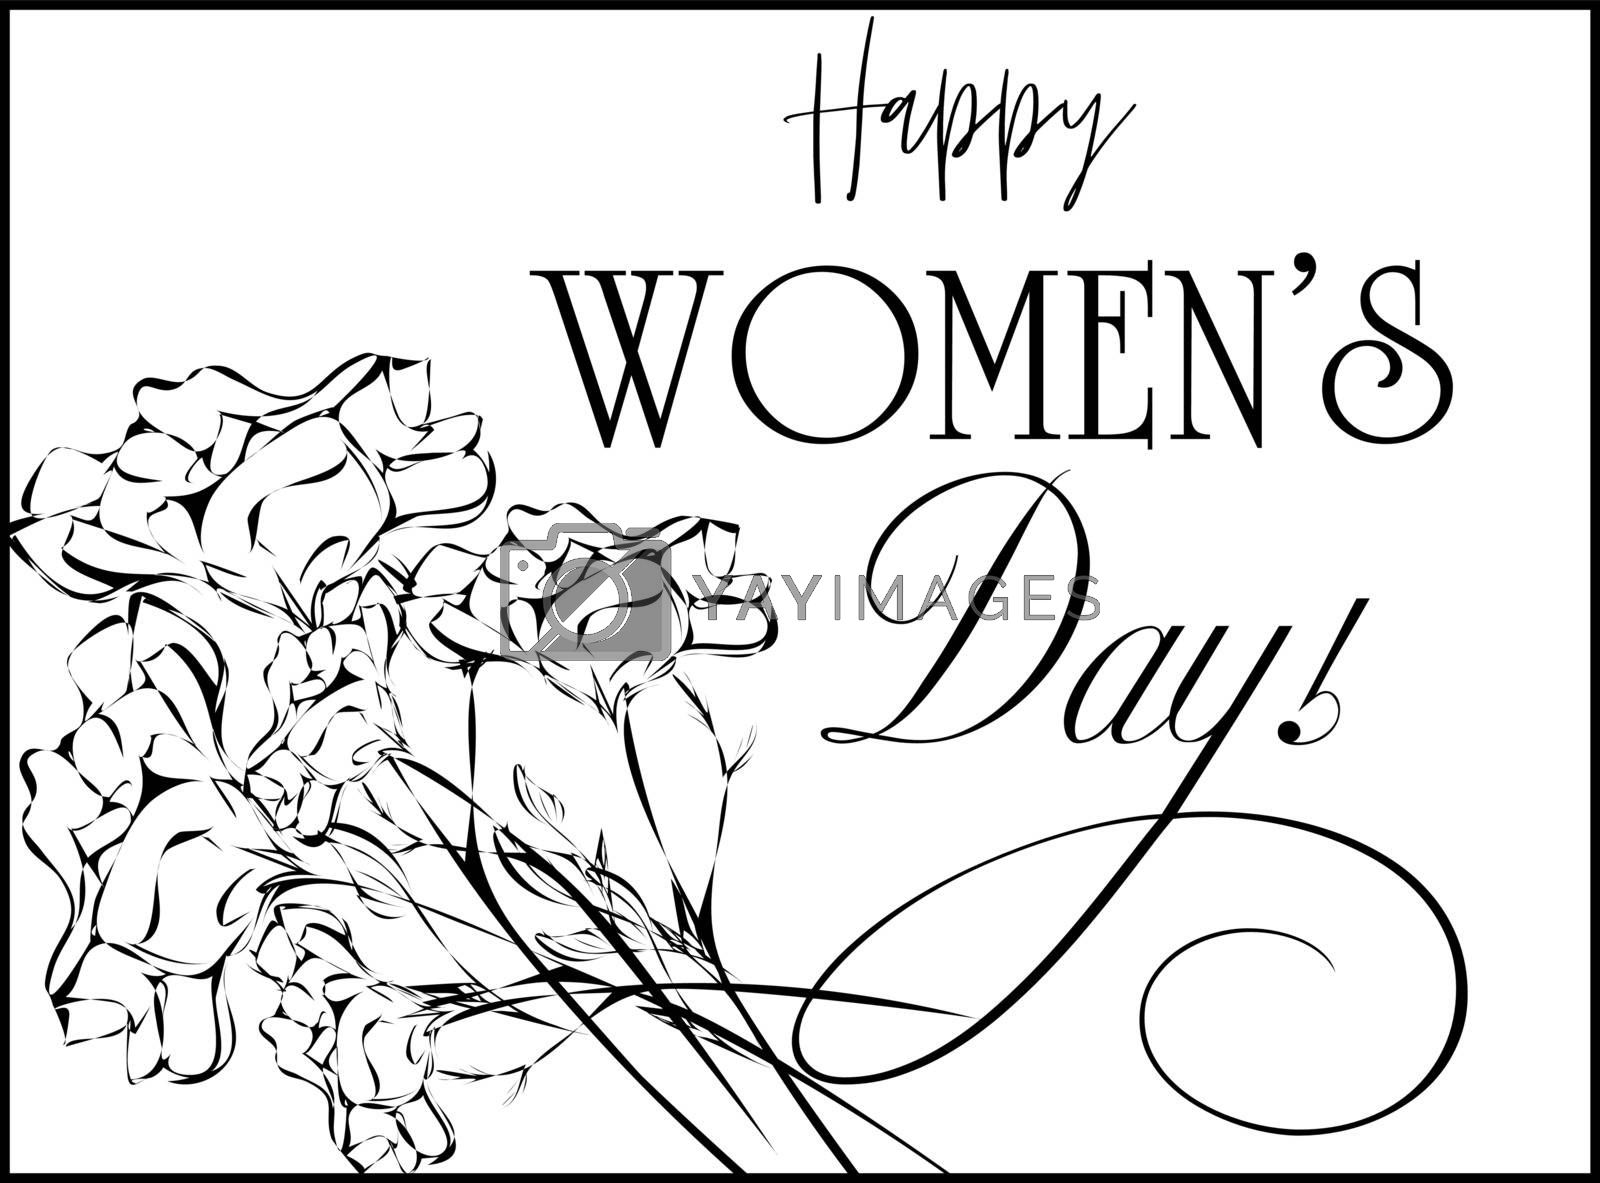 Black and white sketch postcard with carnations in retro style, text 'happy women's day'